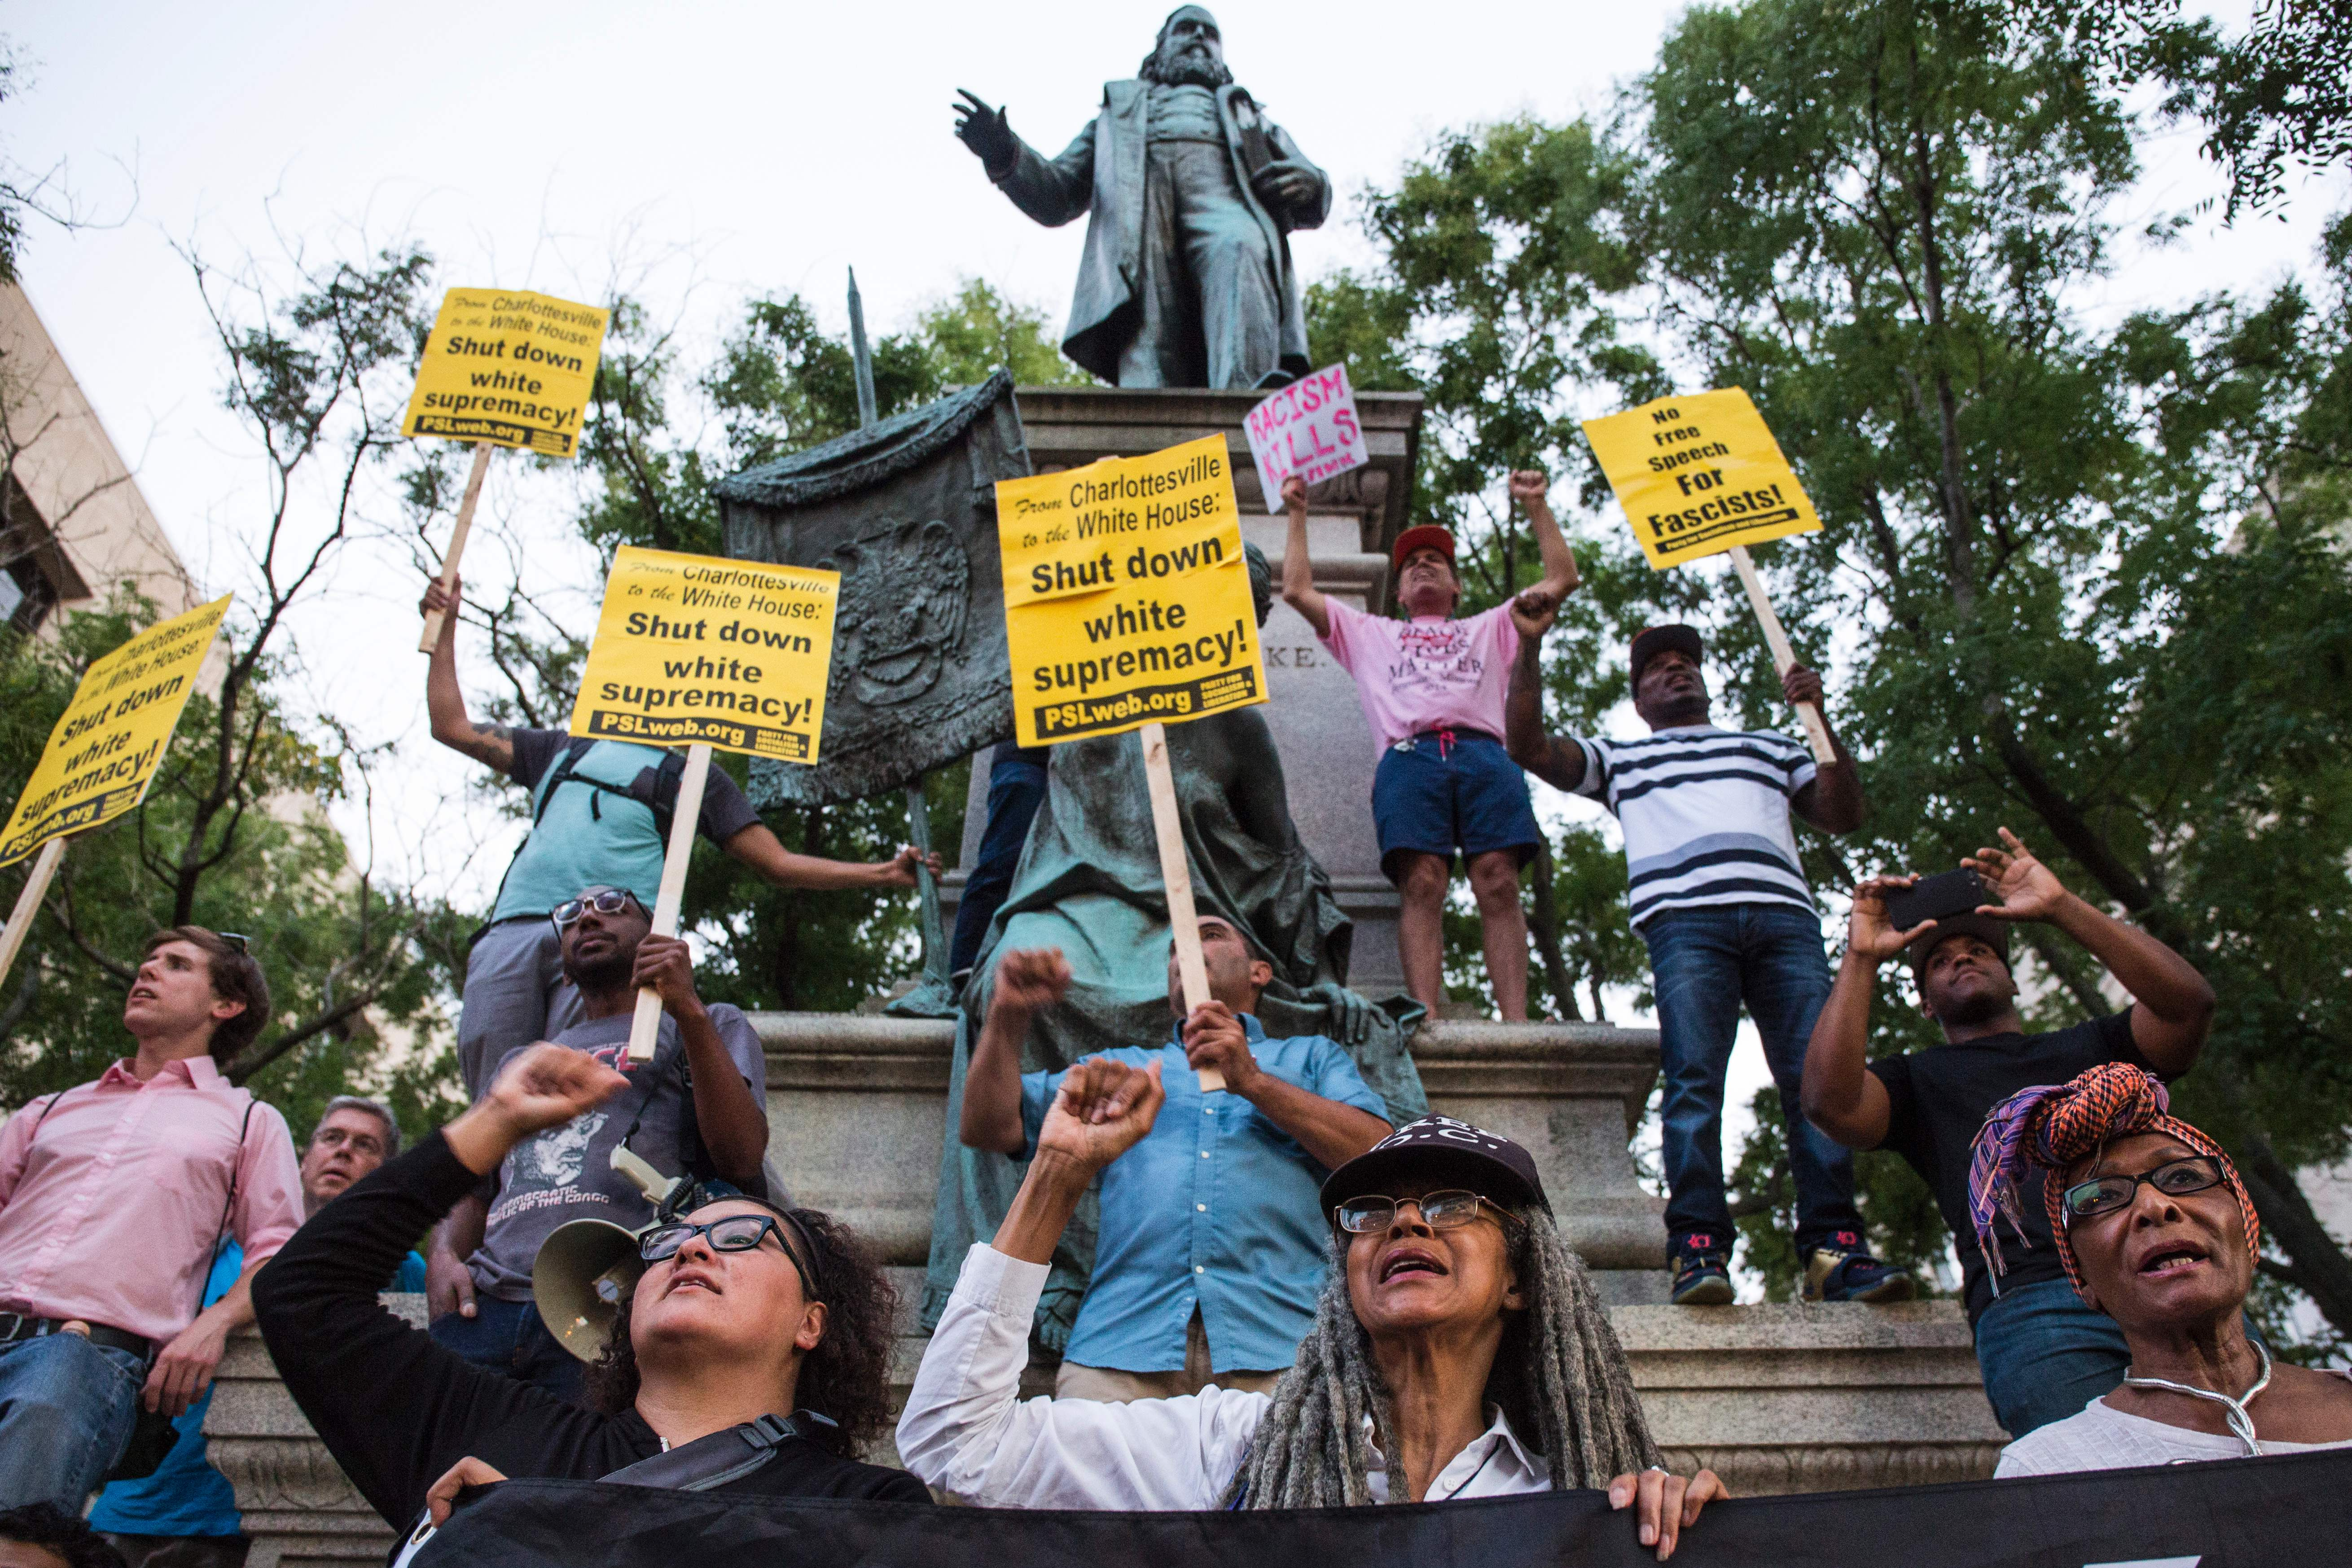 """Several protesters demonstrate at the Albert Pike statue on August 13, 2017. Some of the protesters hold yellow signs that in part say """"shut down white supremacy."""" The statue is seen above them."""